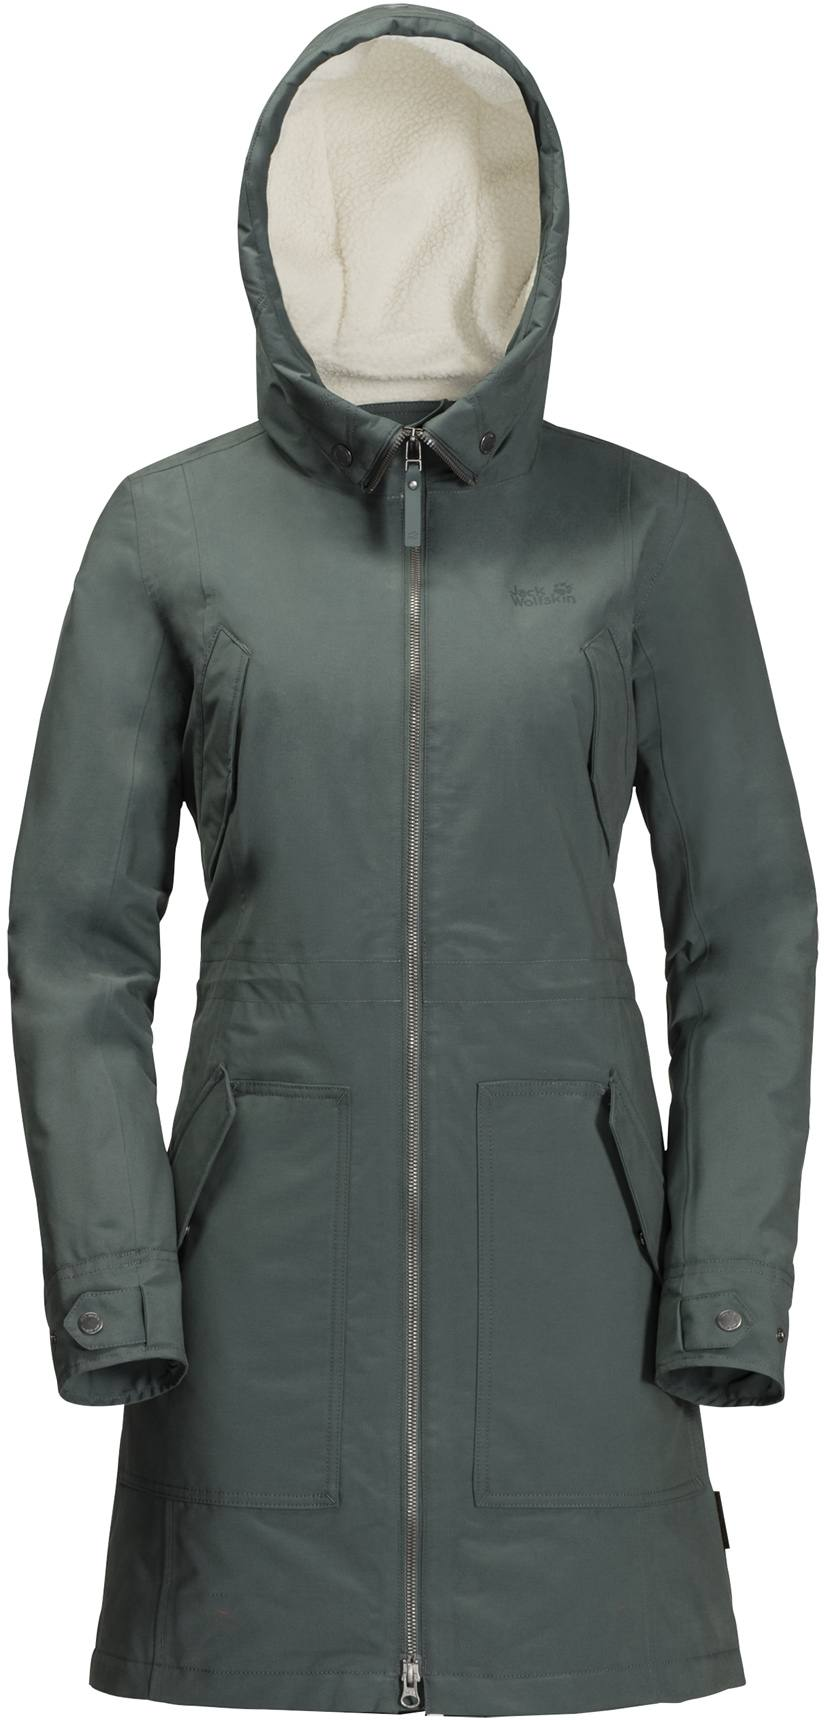 3dcef2d56d6 Jack Wolfskin Rocky Point Parka Greenish Grey. Full image